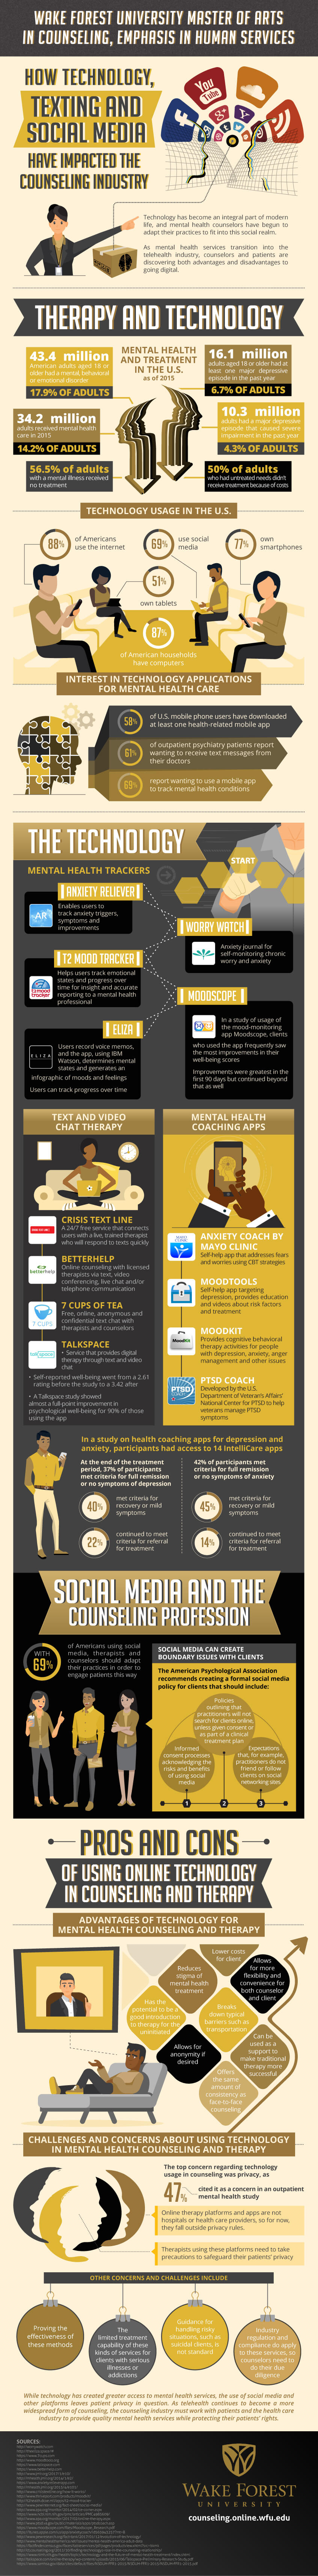 Infographic: The impact of technology, texting, and social media to counseling industry.